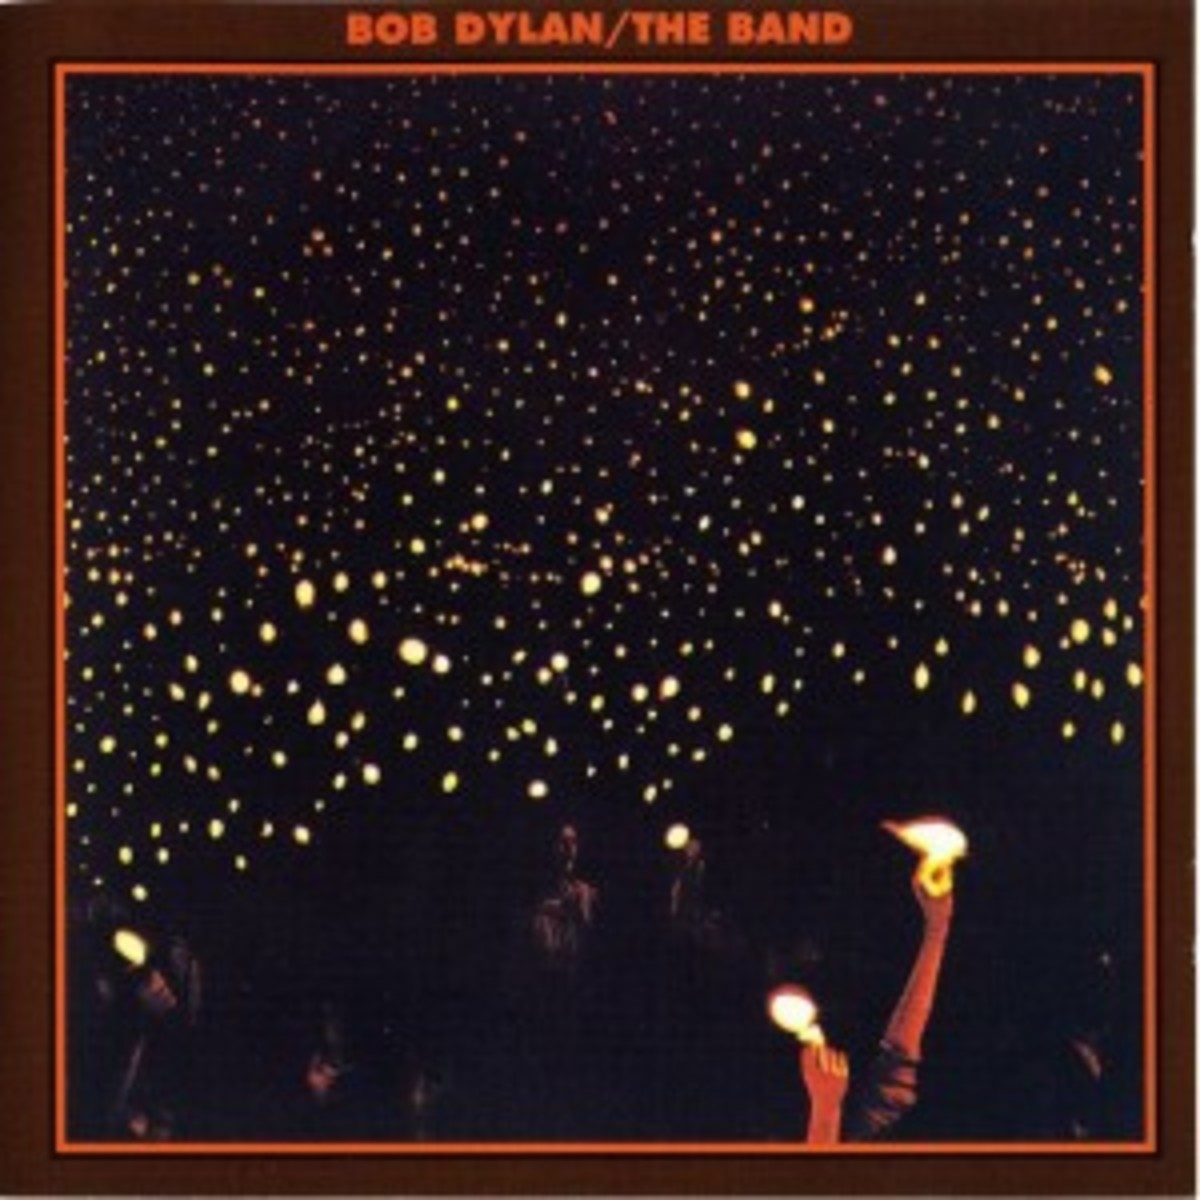 Bob Dylan and The Band Before The Flood